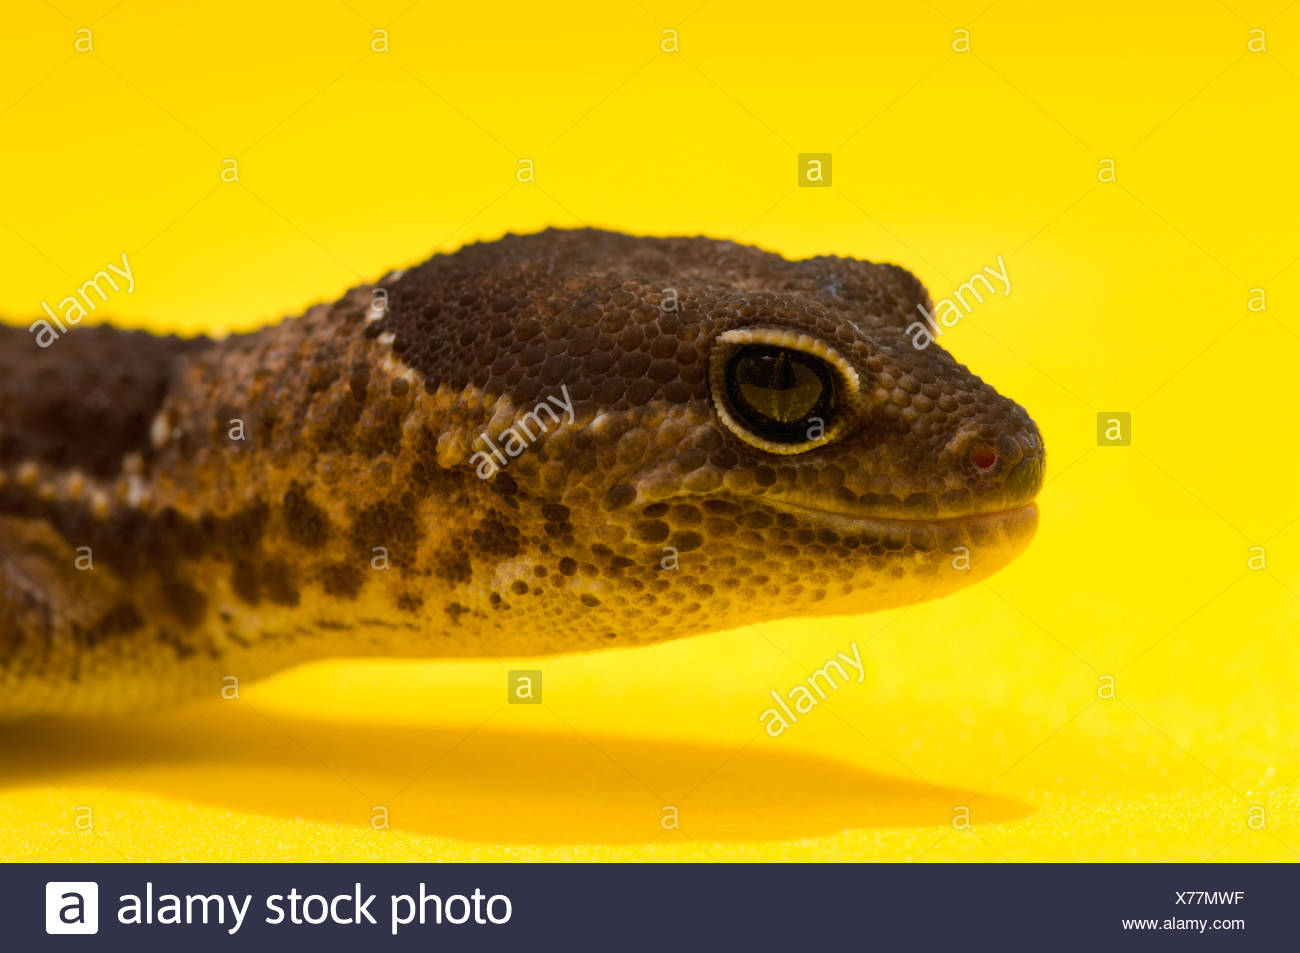 Close Up Of African Fat-Tailed Gecko On Yellow - Stock Image